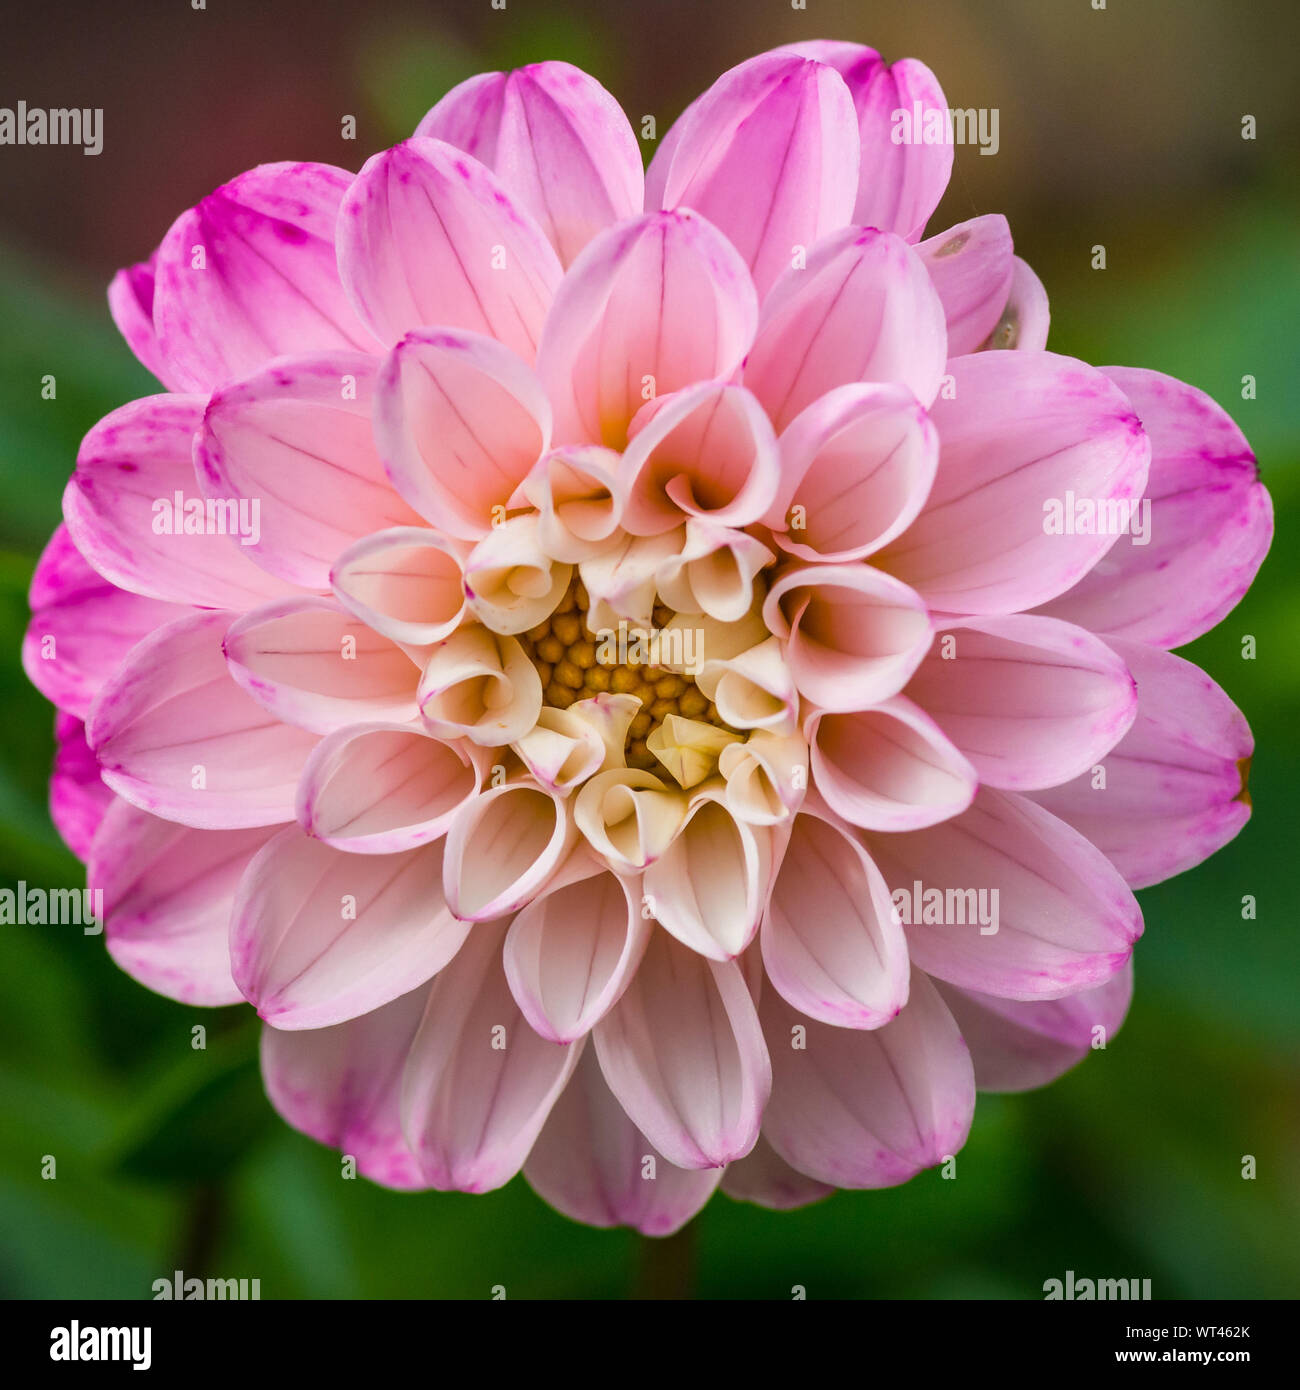 A macro shot of a pink dahlia bloom. Stock Photo